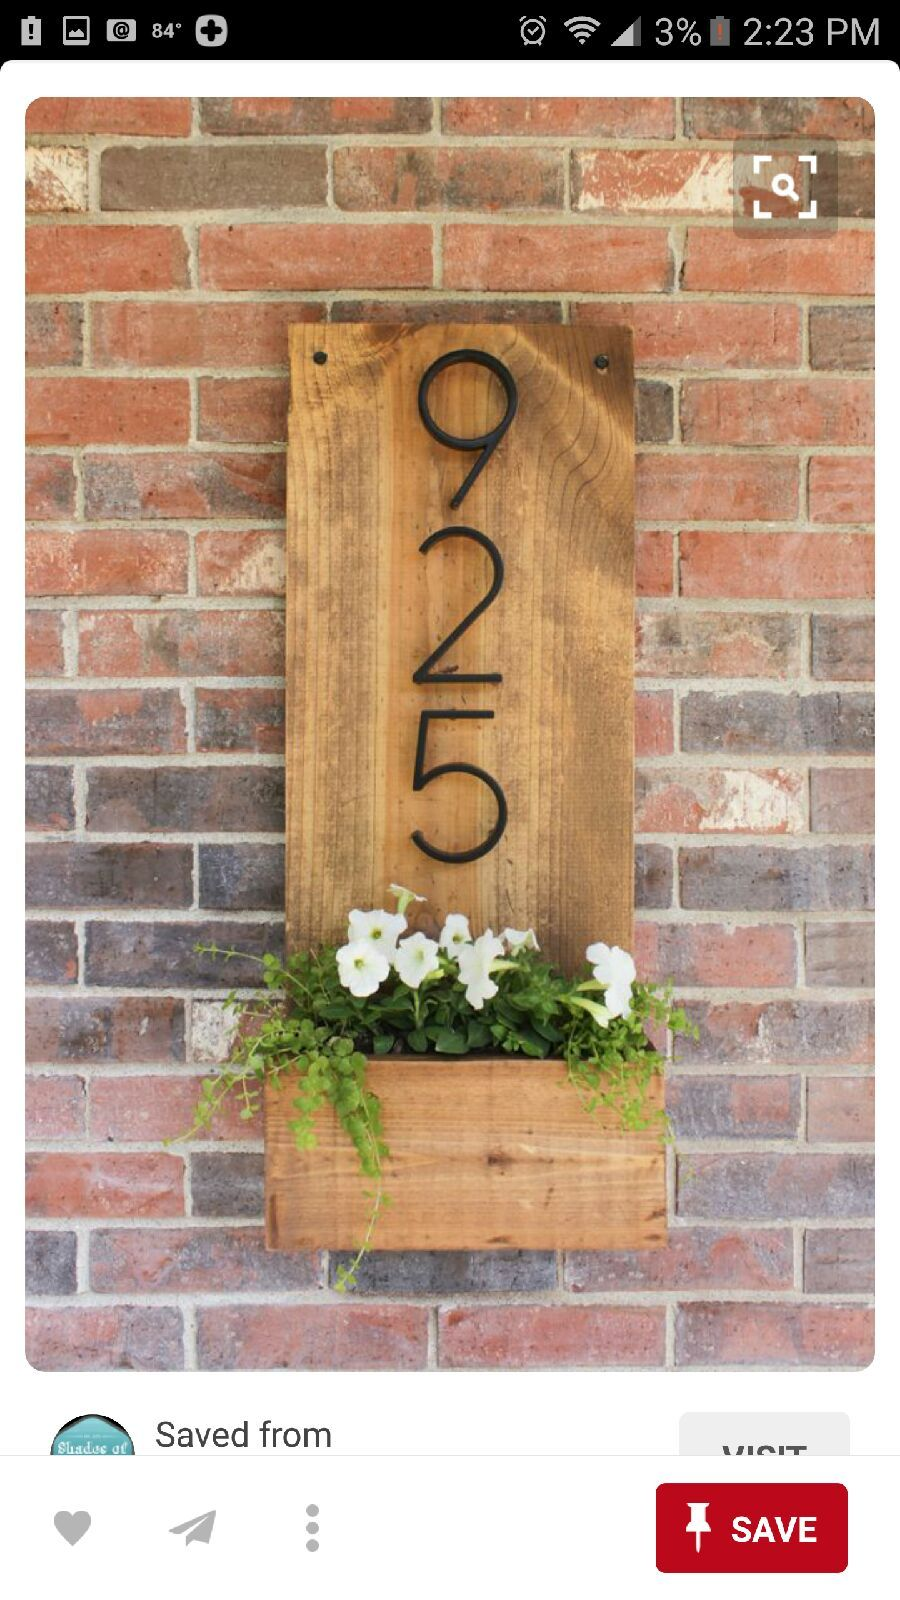 86ca5519f2b0 house number planter   Stuff for Home in 2019   DIY Home Decor ...